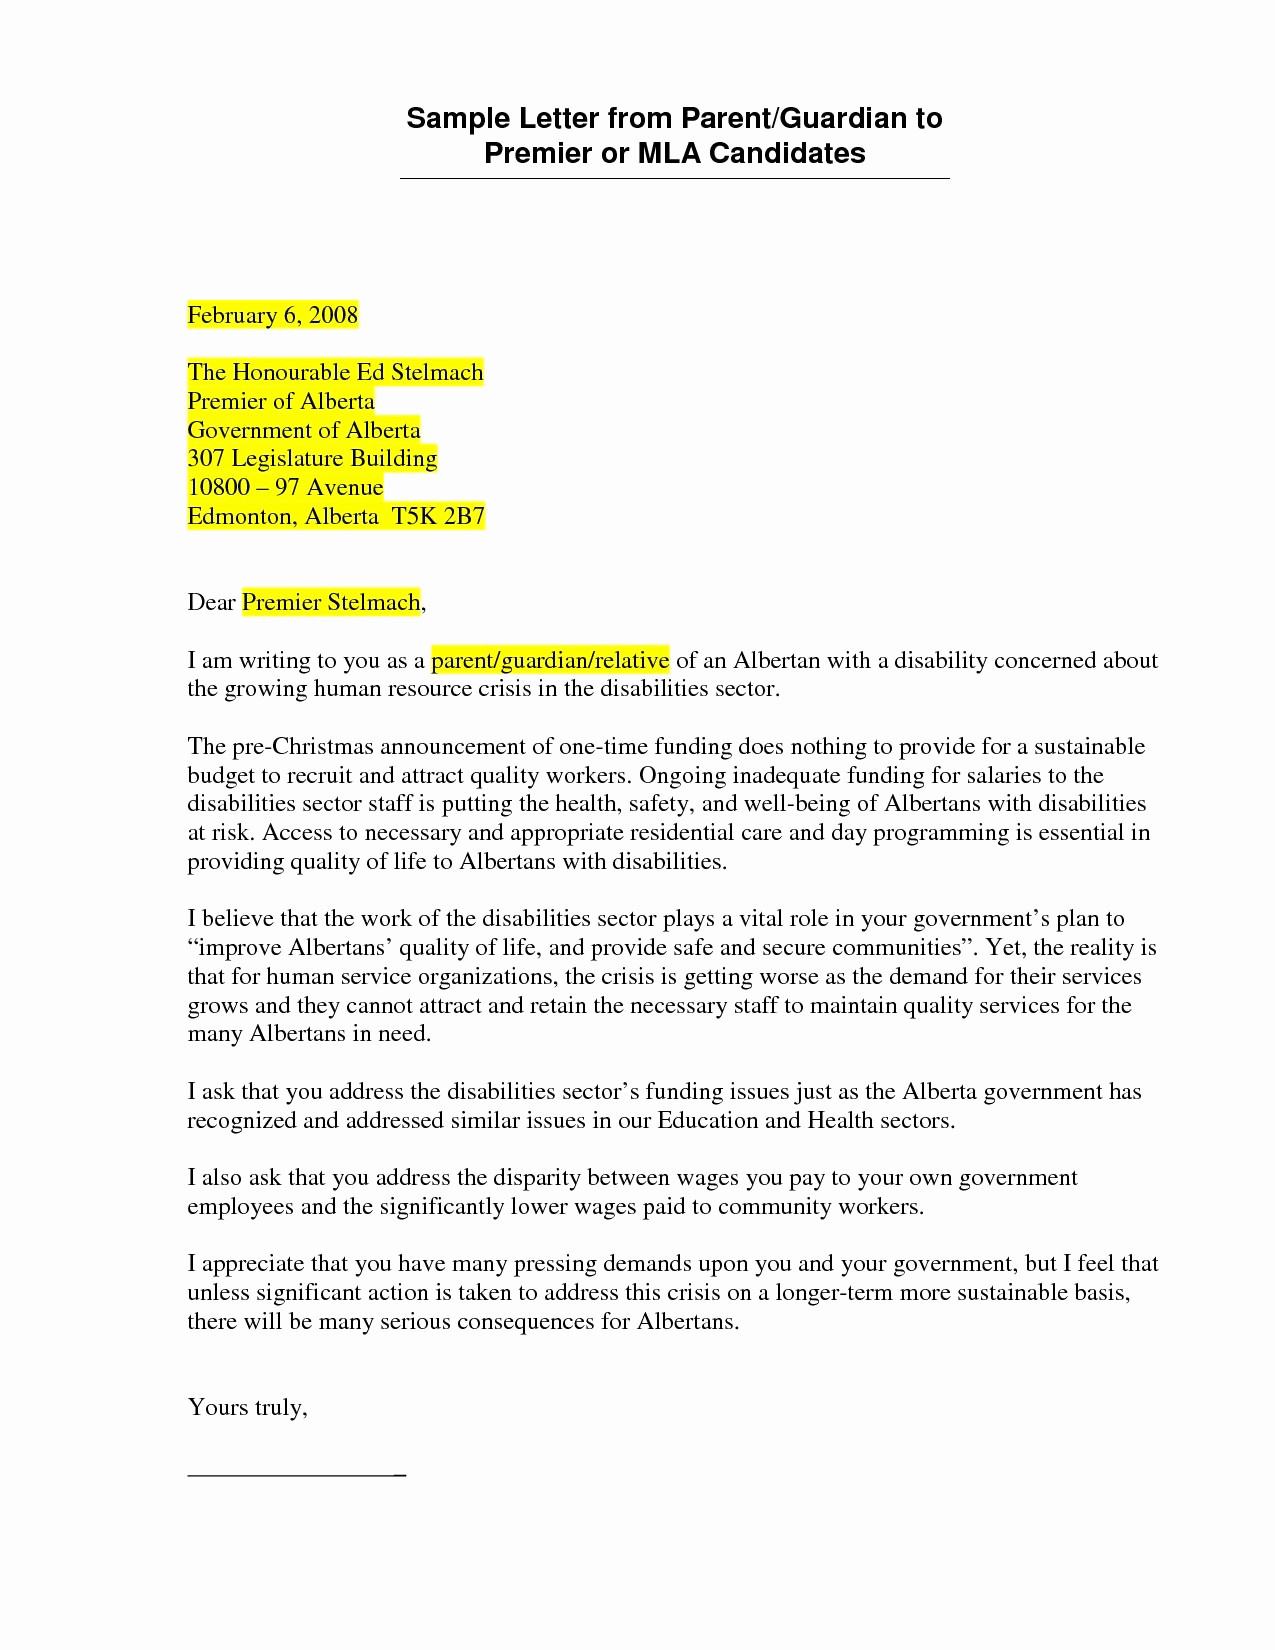 Mla Cover Letter Template